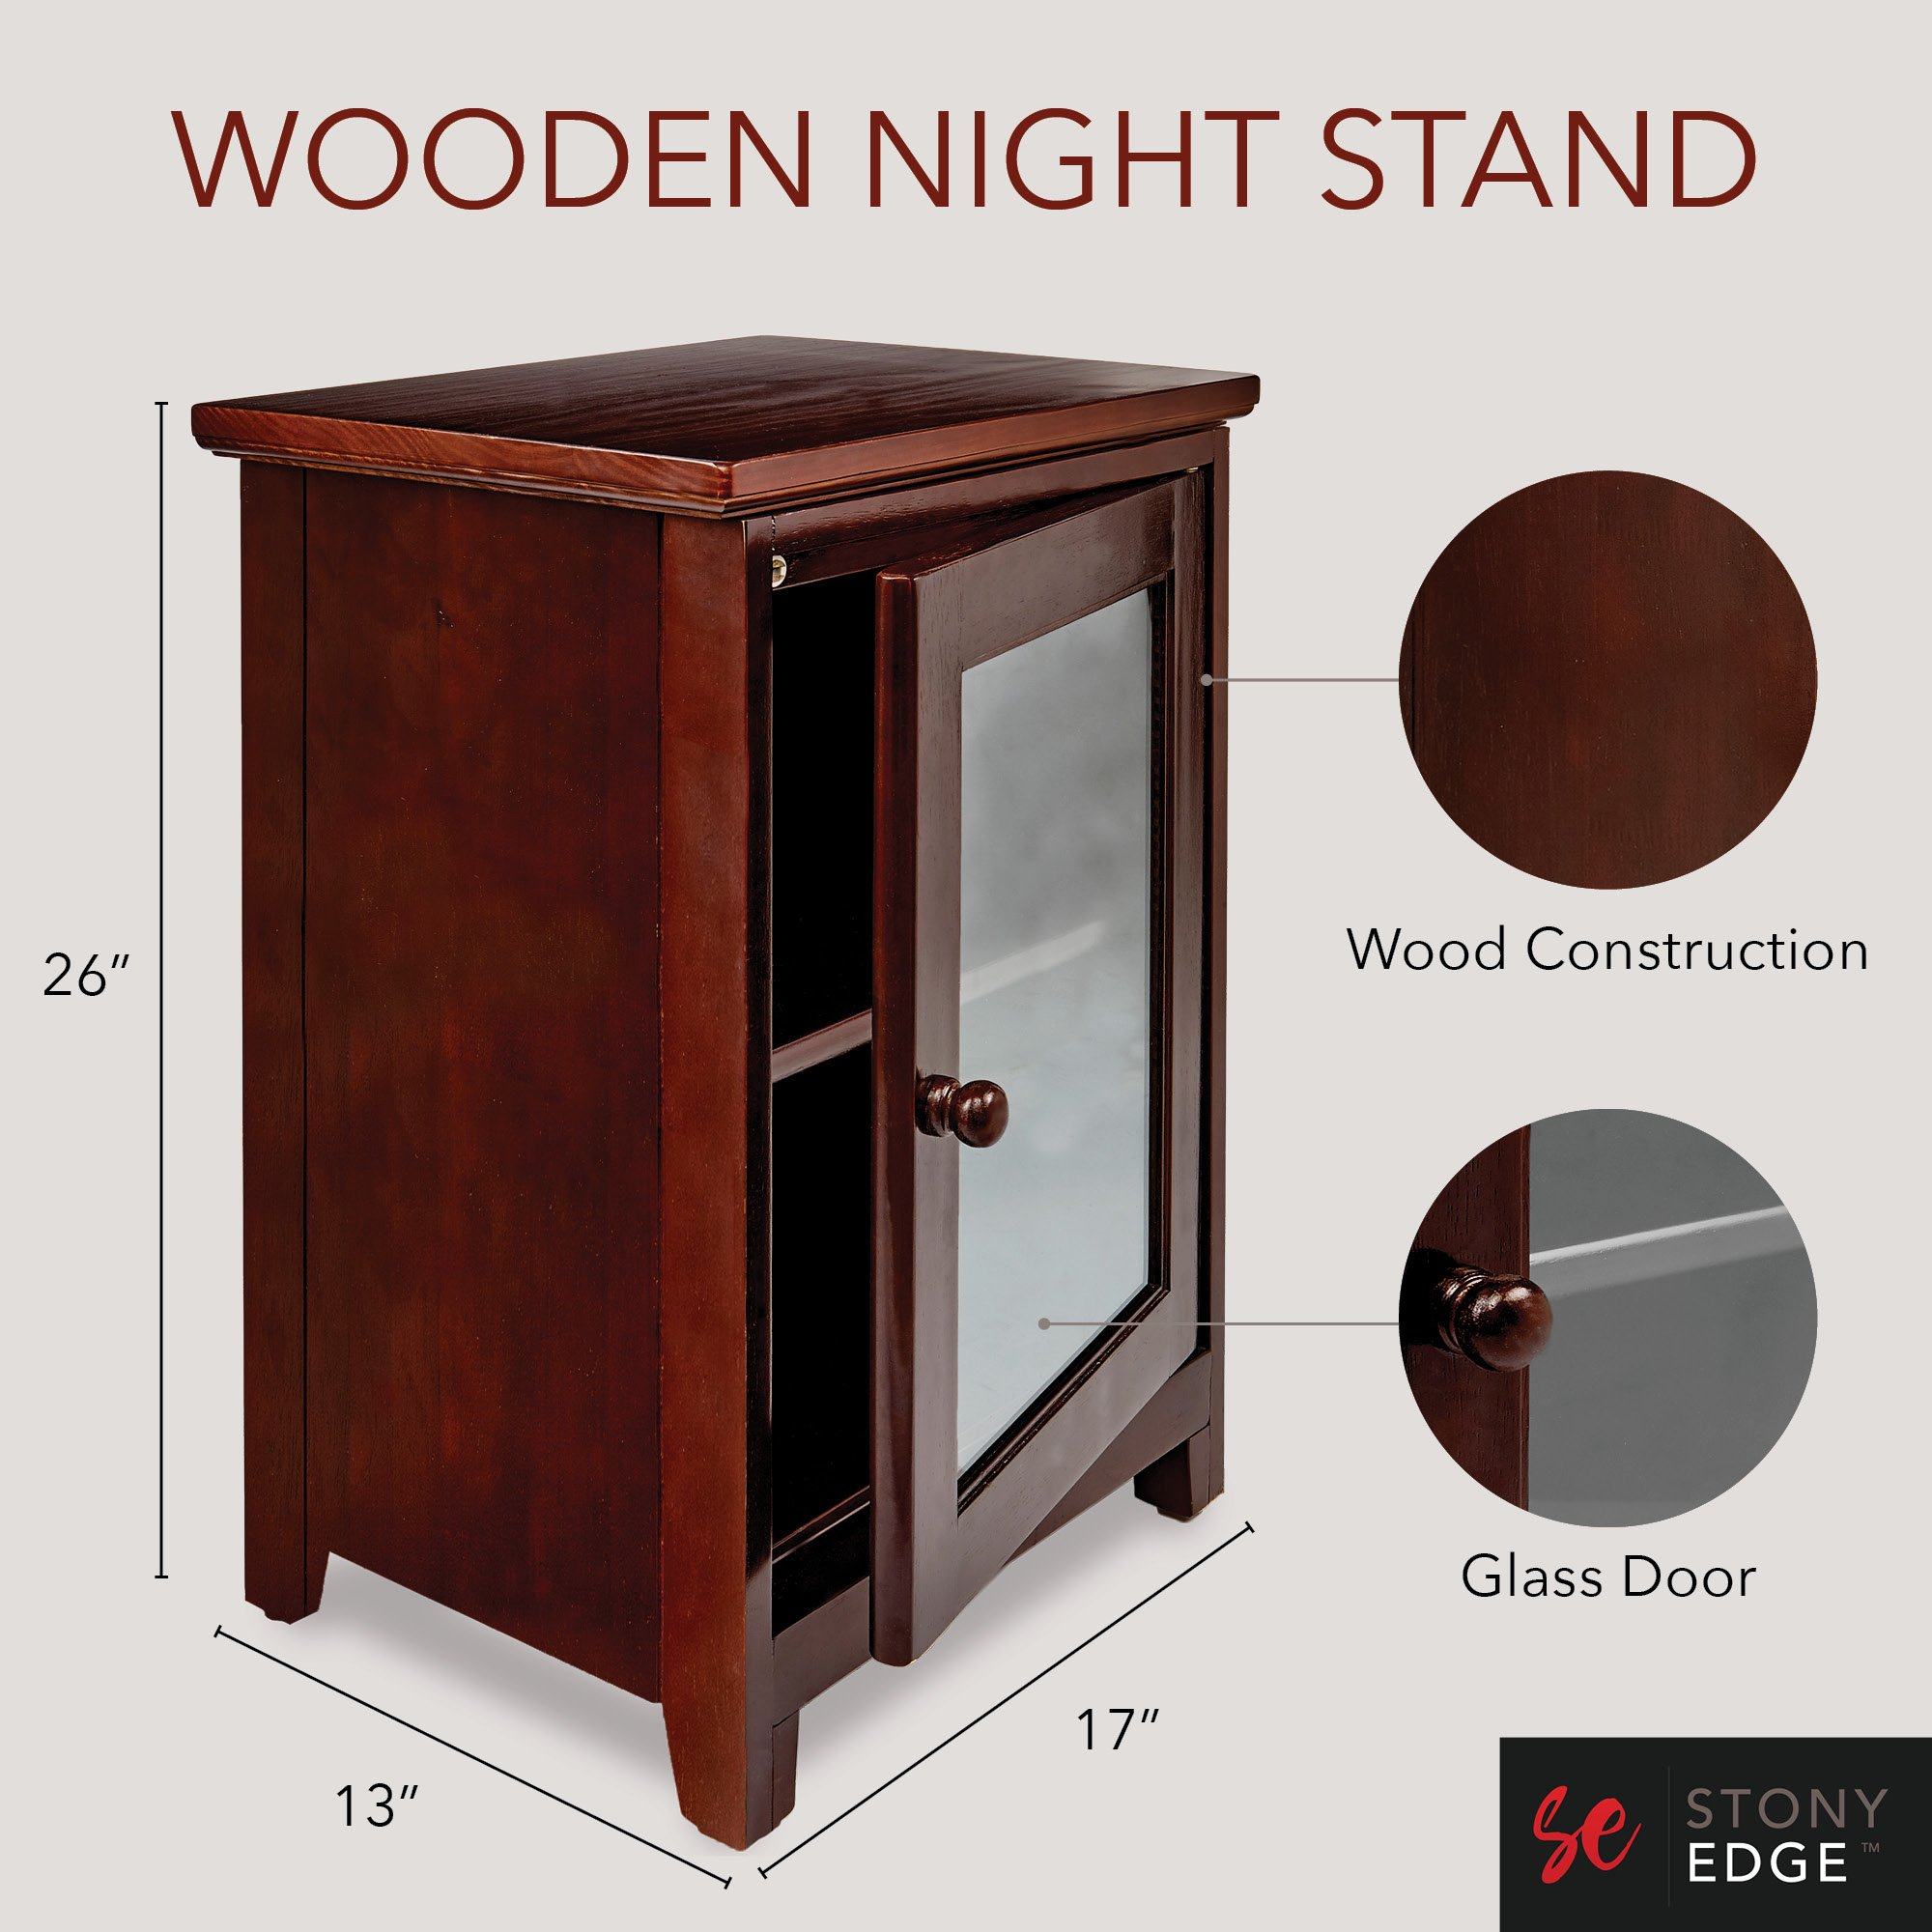 stony edge espresso night stand easiest assembly tools winsome wood beechwood end accent table required premium two shelf wooden bedside with glass door heavy duty tables and